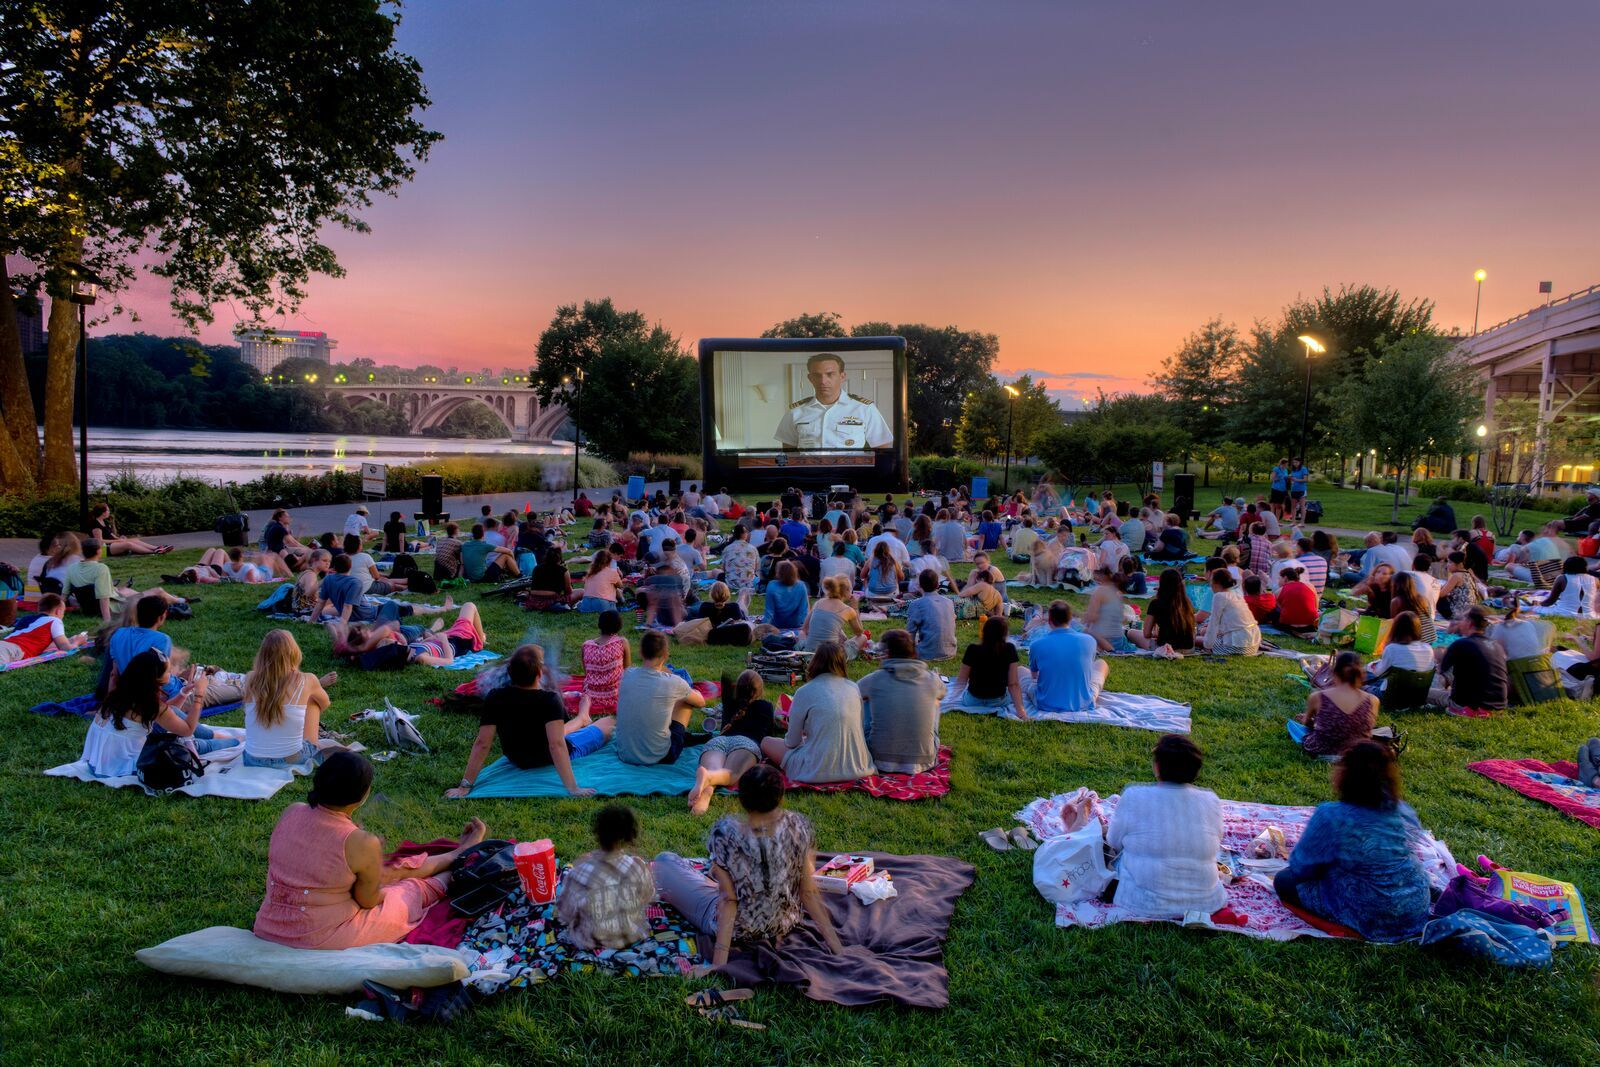 Attend an outdoor movie